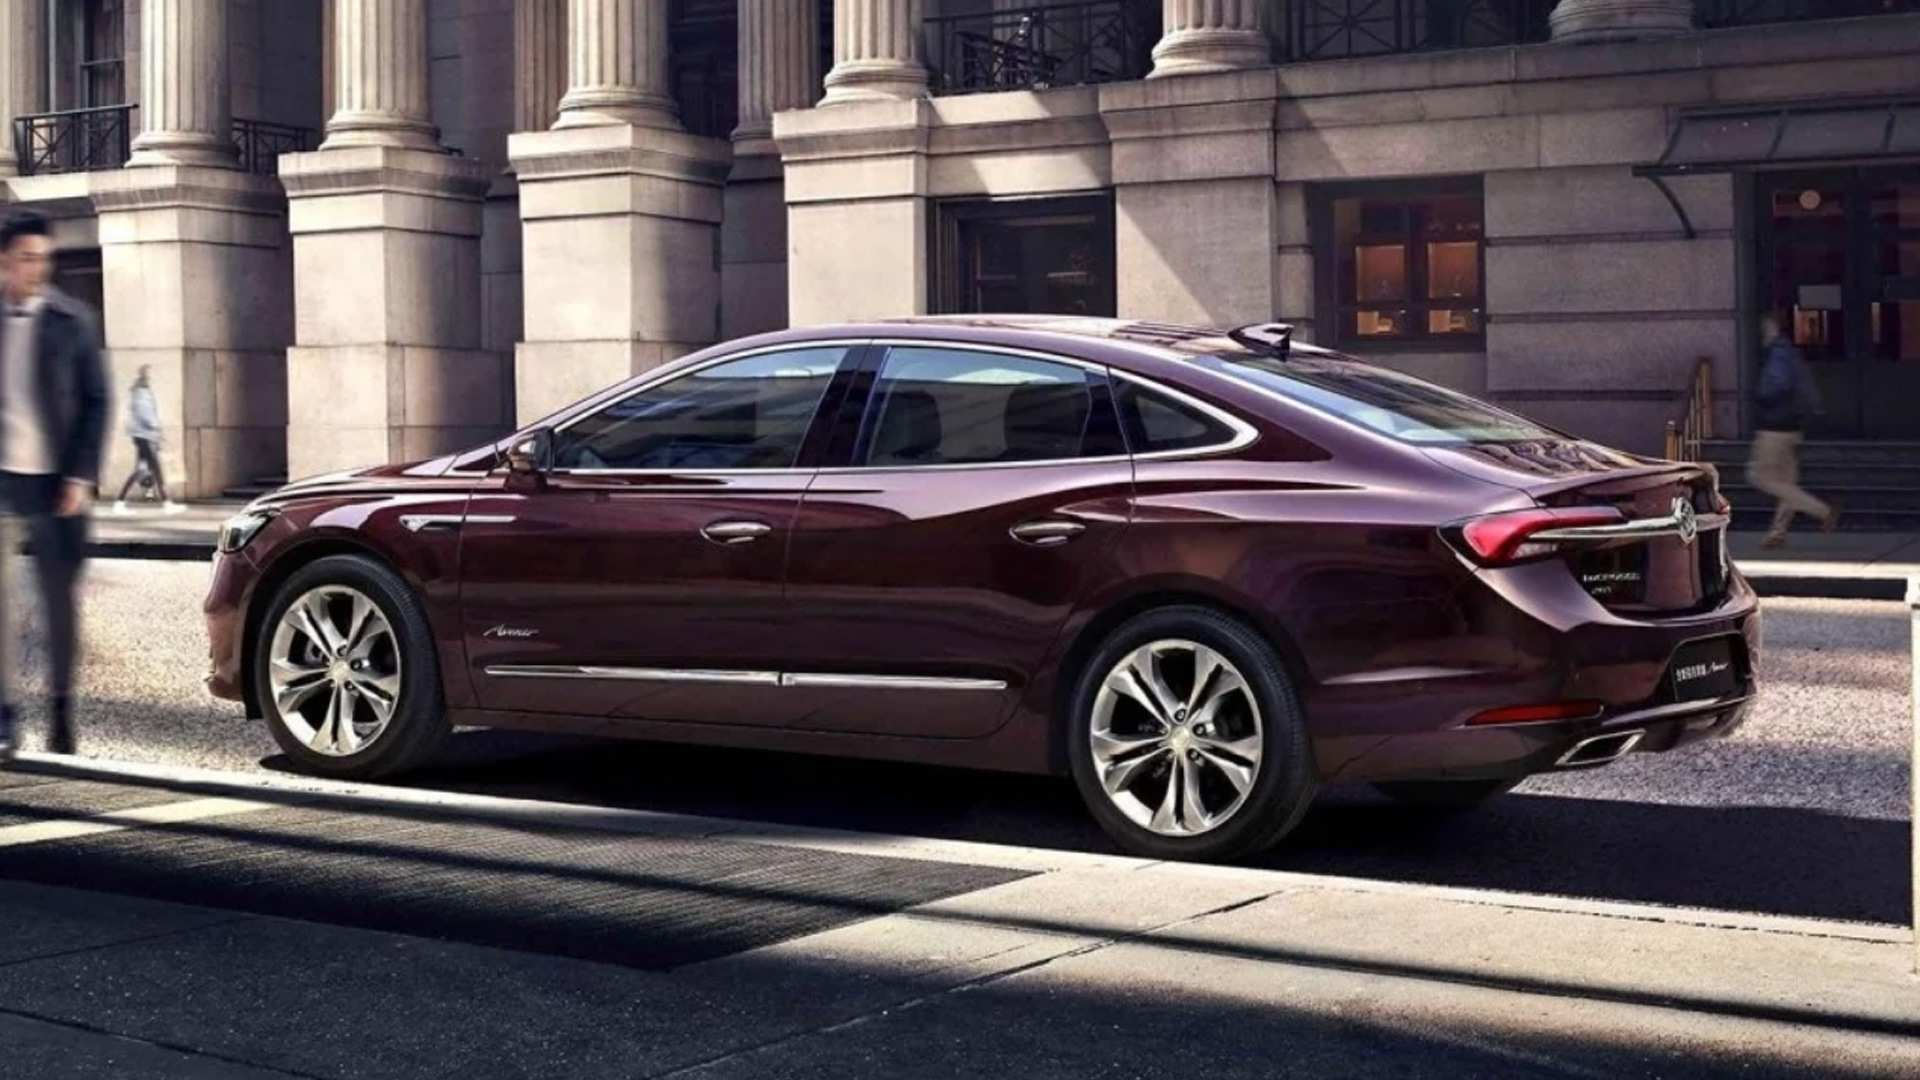 17 New 2020 Buick Lacrosse Pictures Model for 2020 Buick Lacrosse Pictures